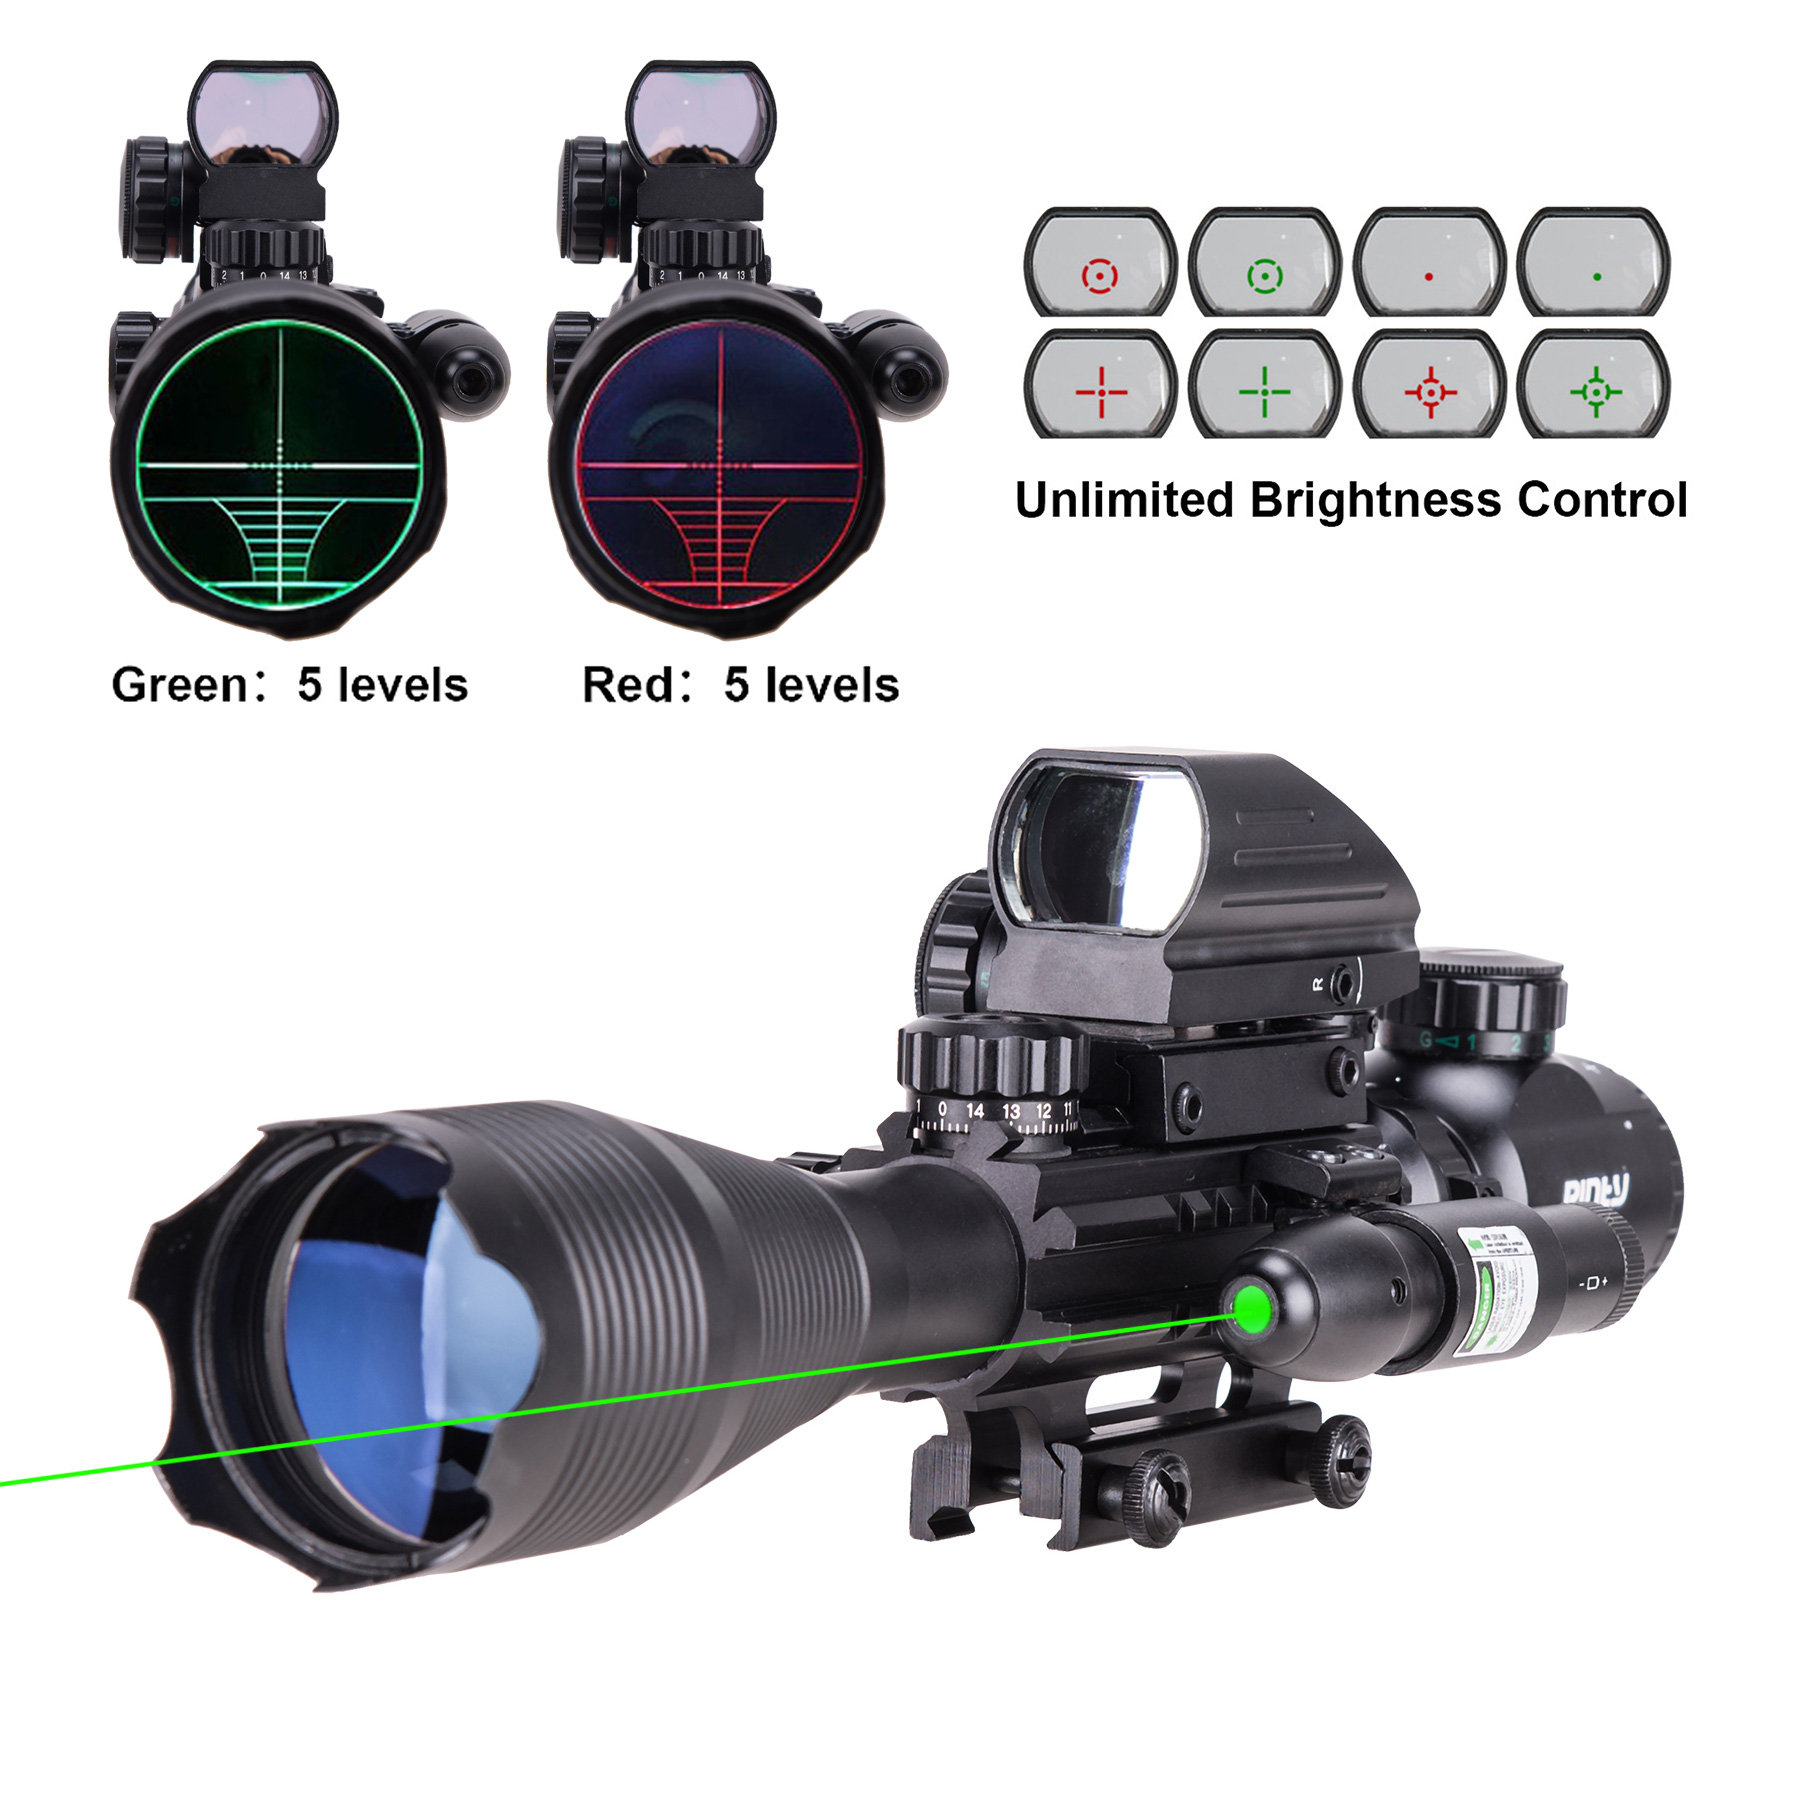 New 4-16x50 AOEG Rangefinder Riflescope W/Green Laser 4 Reticle Green &Red Sight